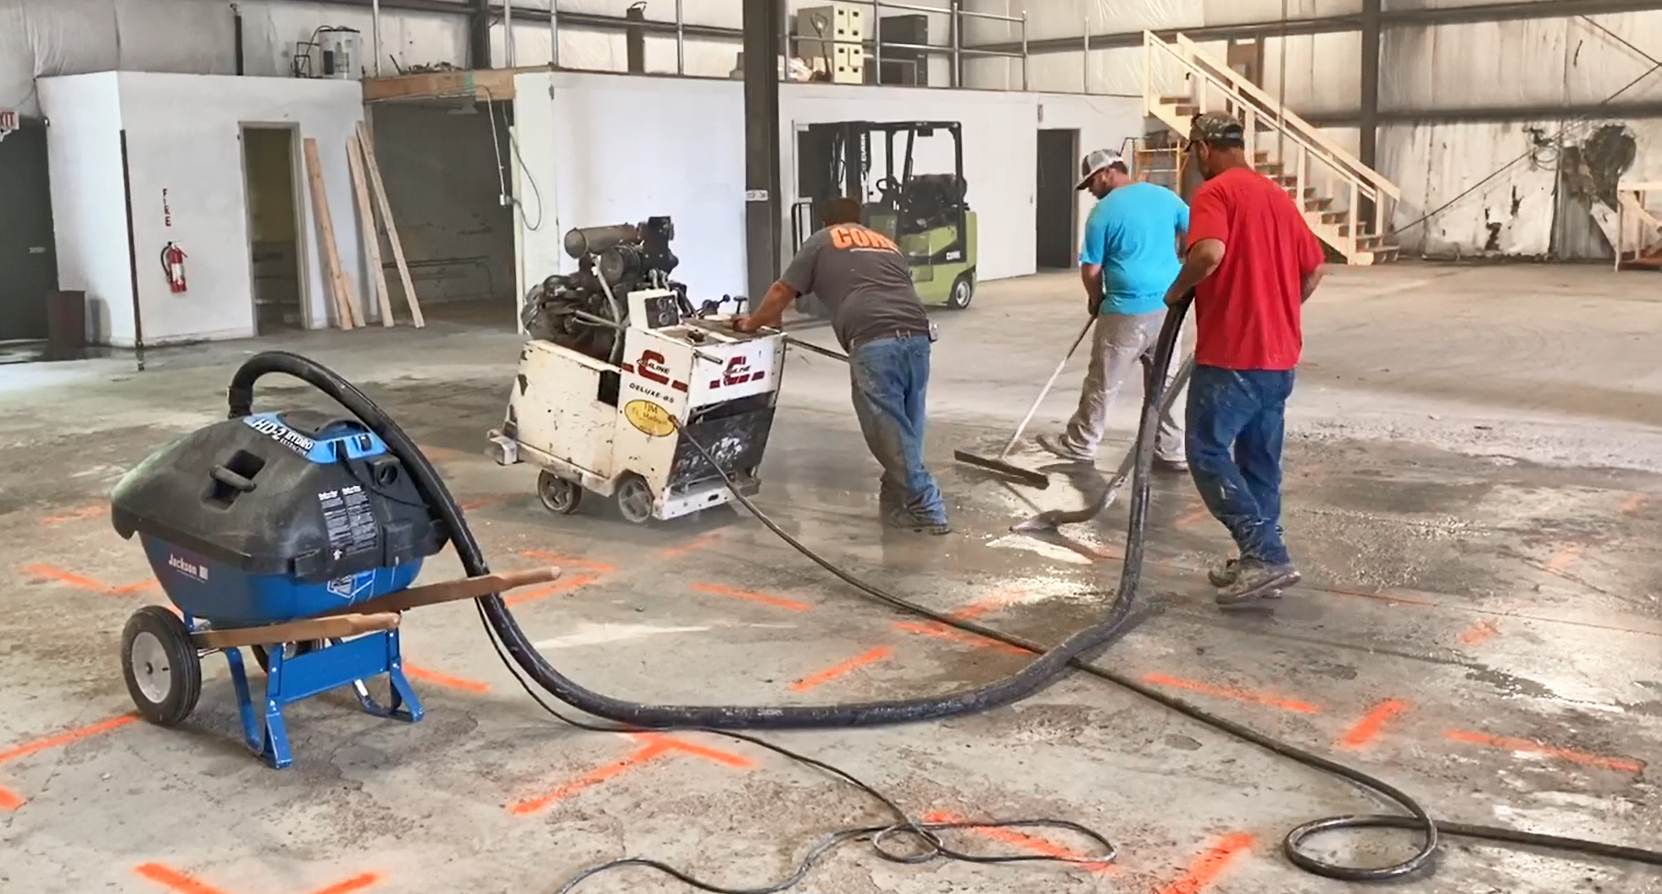 One Roll-n-Vac keeps up with concrete saw; equal to two wet/dry vacs.